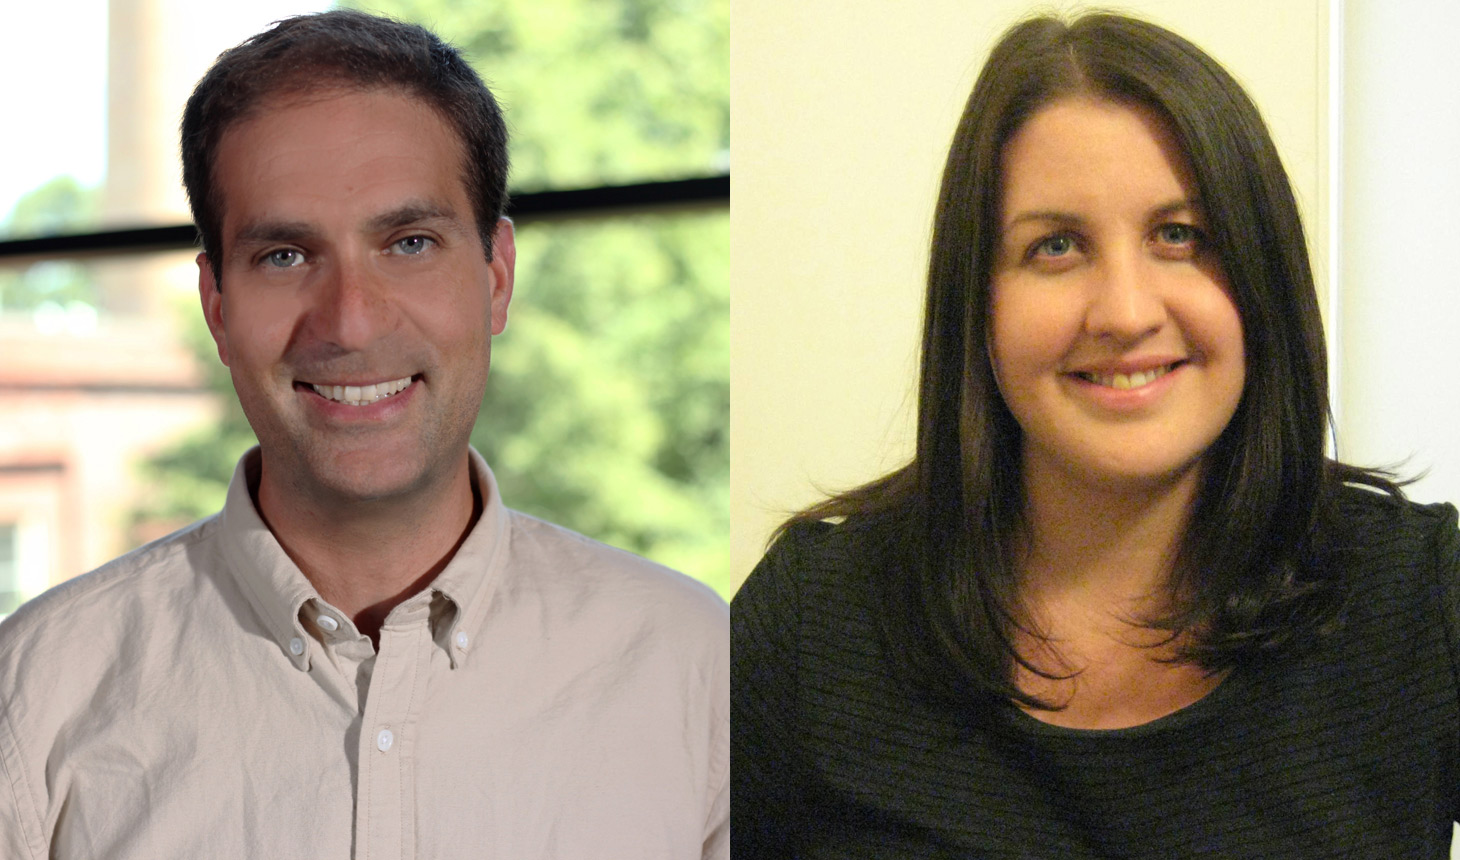 Dror Ben-Zeev, PhD (left), and Rachel Thompson, PhD (right), received awards from the Patient-Centered Outcomes Research Institute (PCORI) to support their research.